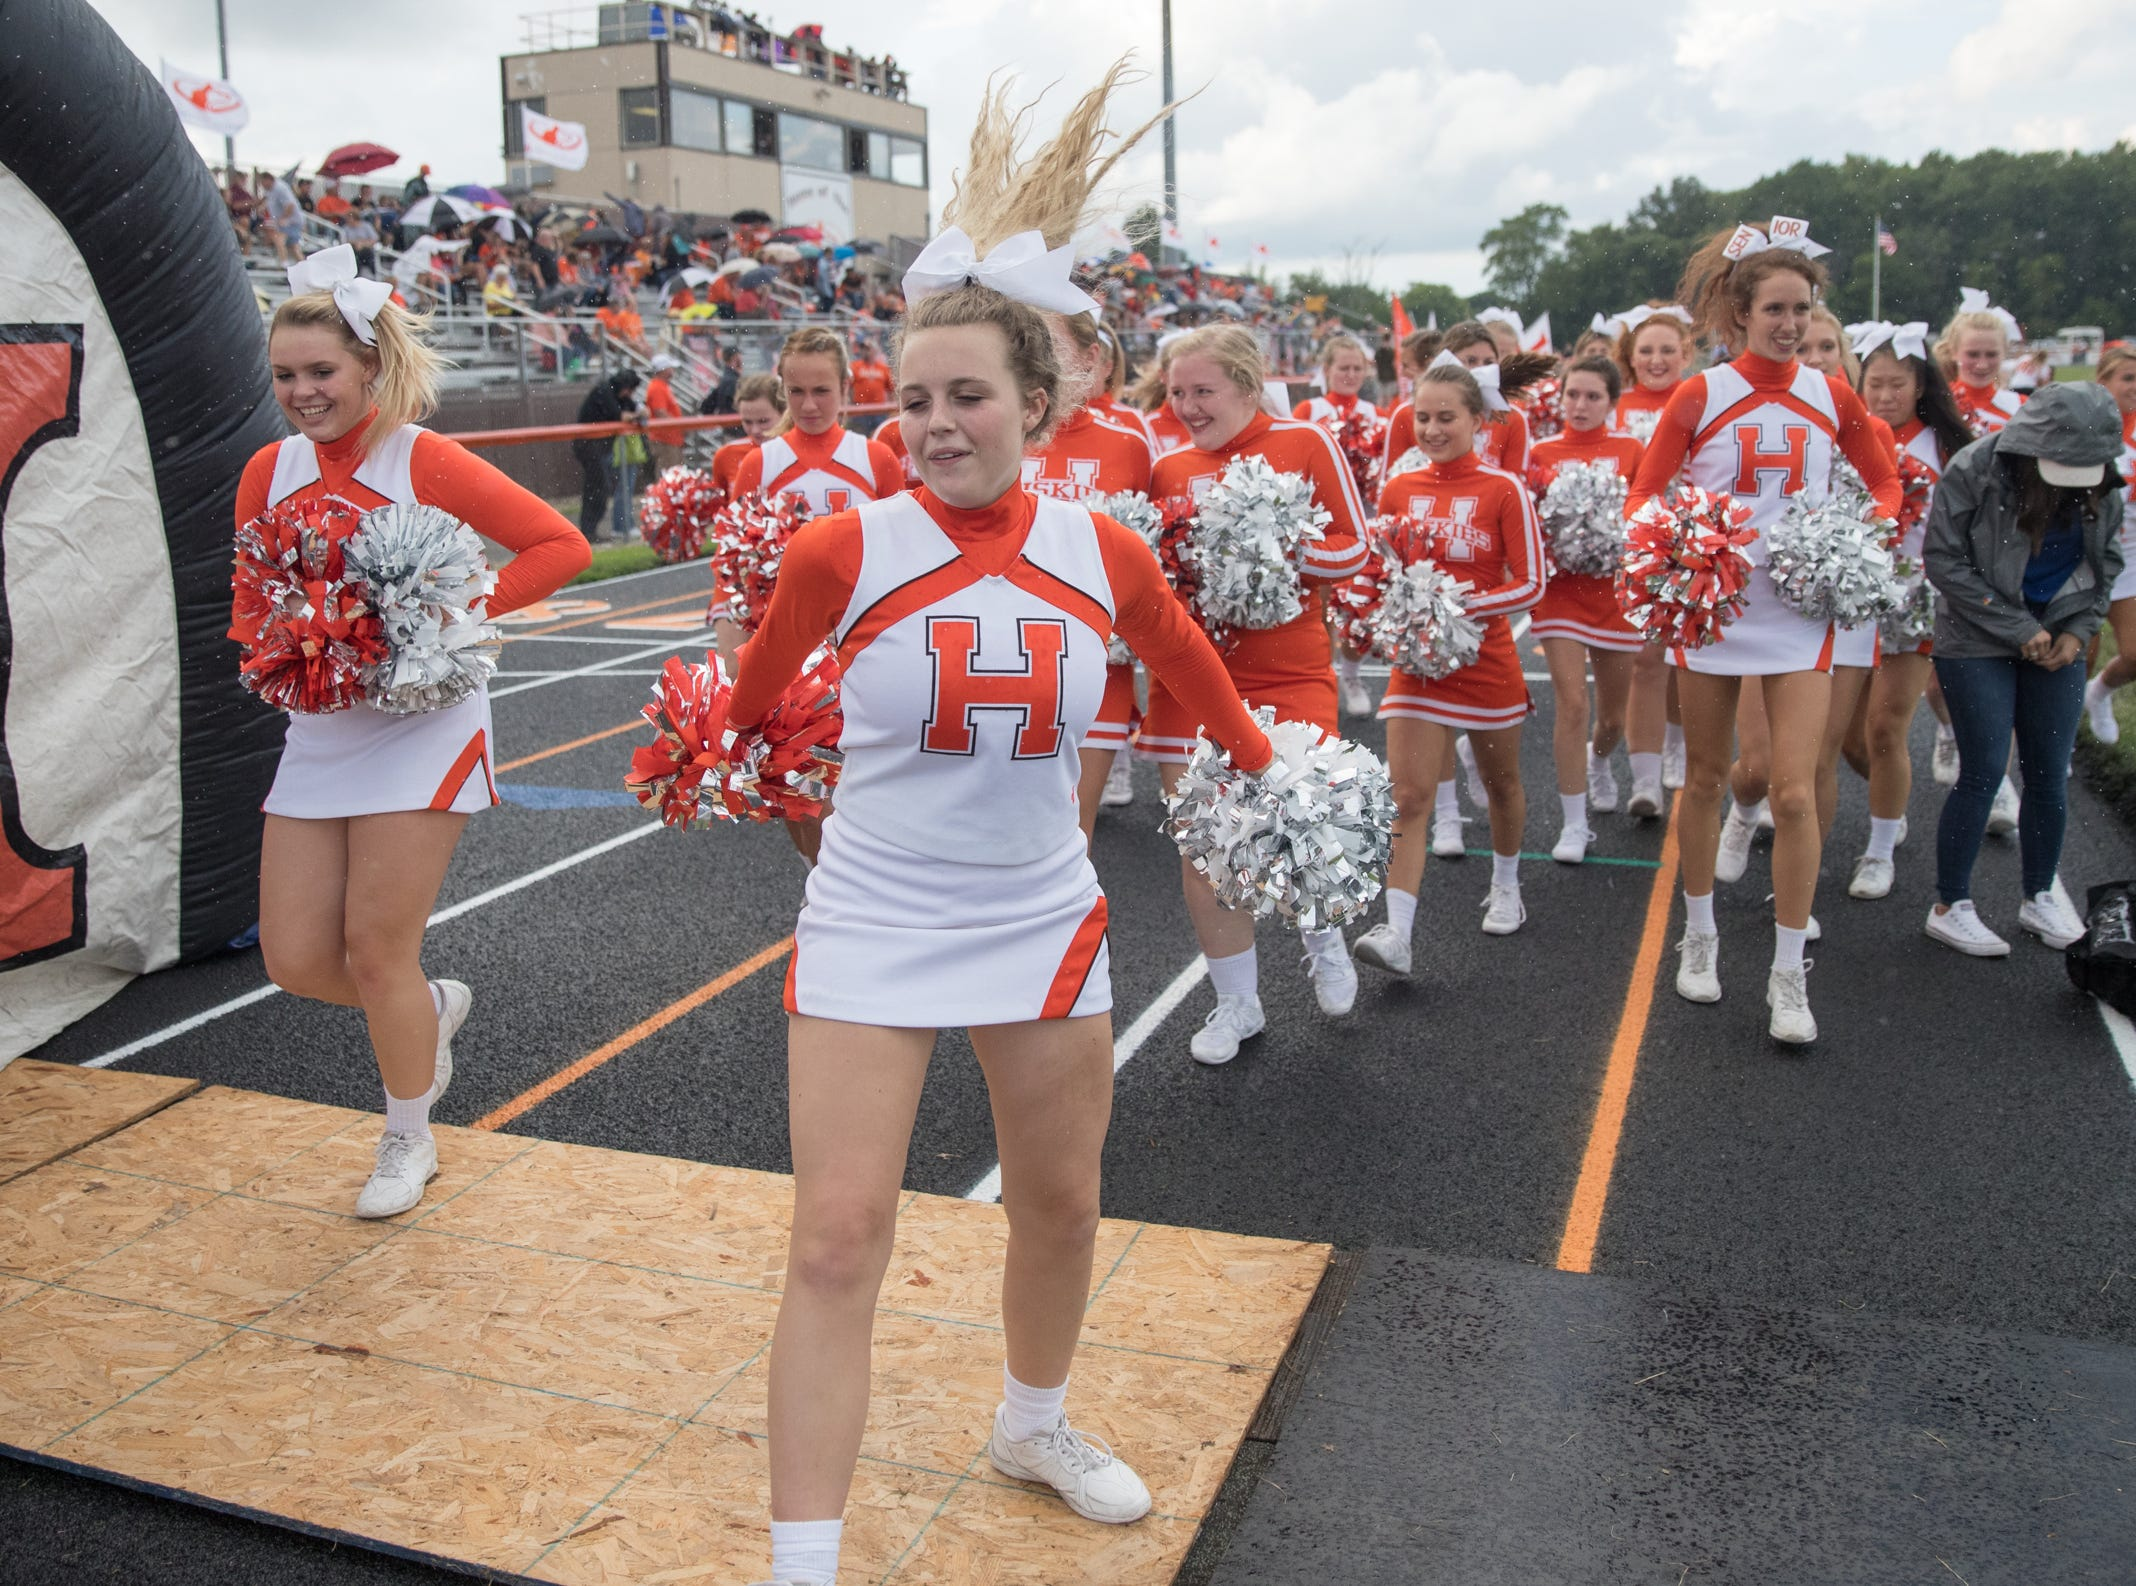 Hamilton Heights High School cheerleaders jump into place before game action, Mount Vernon High School at Hamilton Heights High School football, won by MVHS, 43-14, Arcadia, Friday, Aug. 17, 2018. This game is the first for HHHS head coach Jon Kirschner, who faced his father Mike Kirschner, a veteran and champion coach in his first season at MVHS.